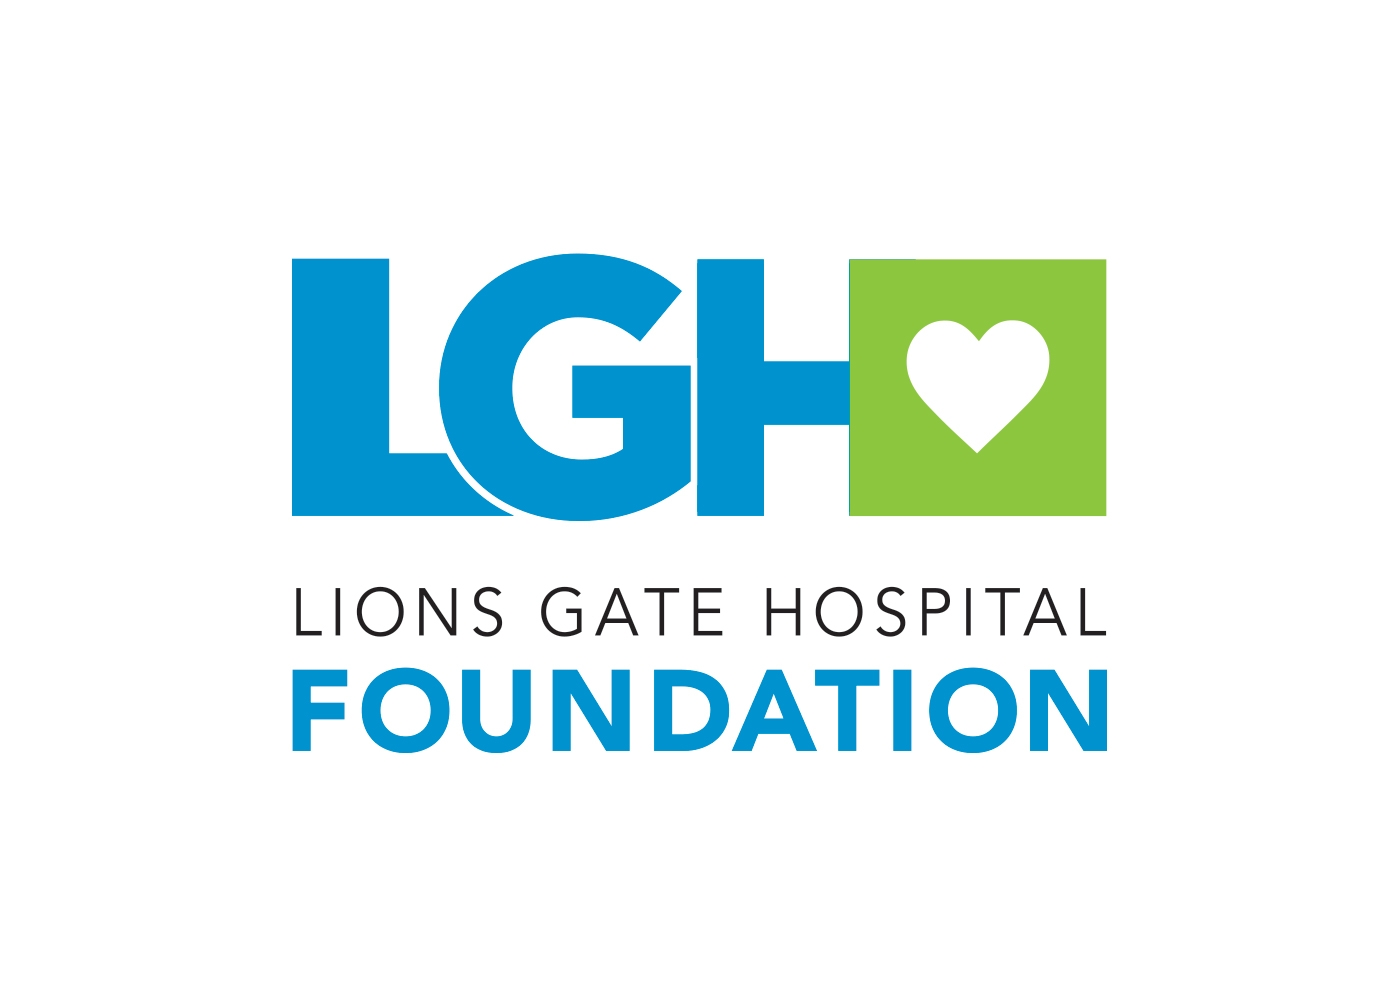 Logo lions gate hospital foundation